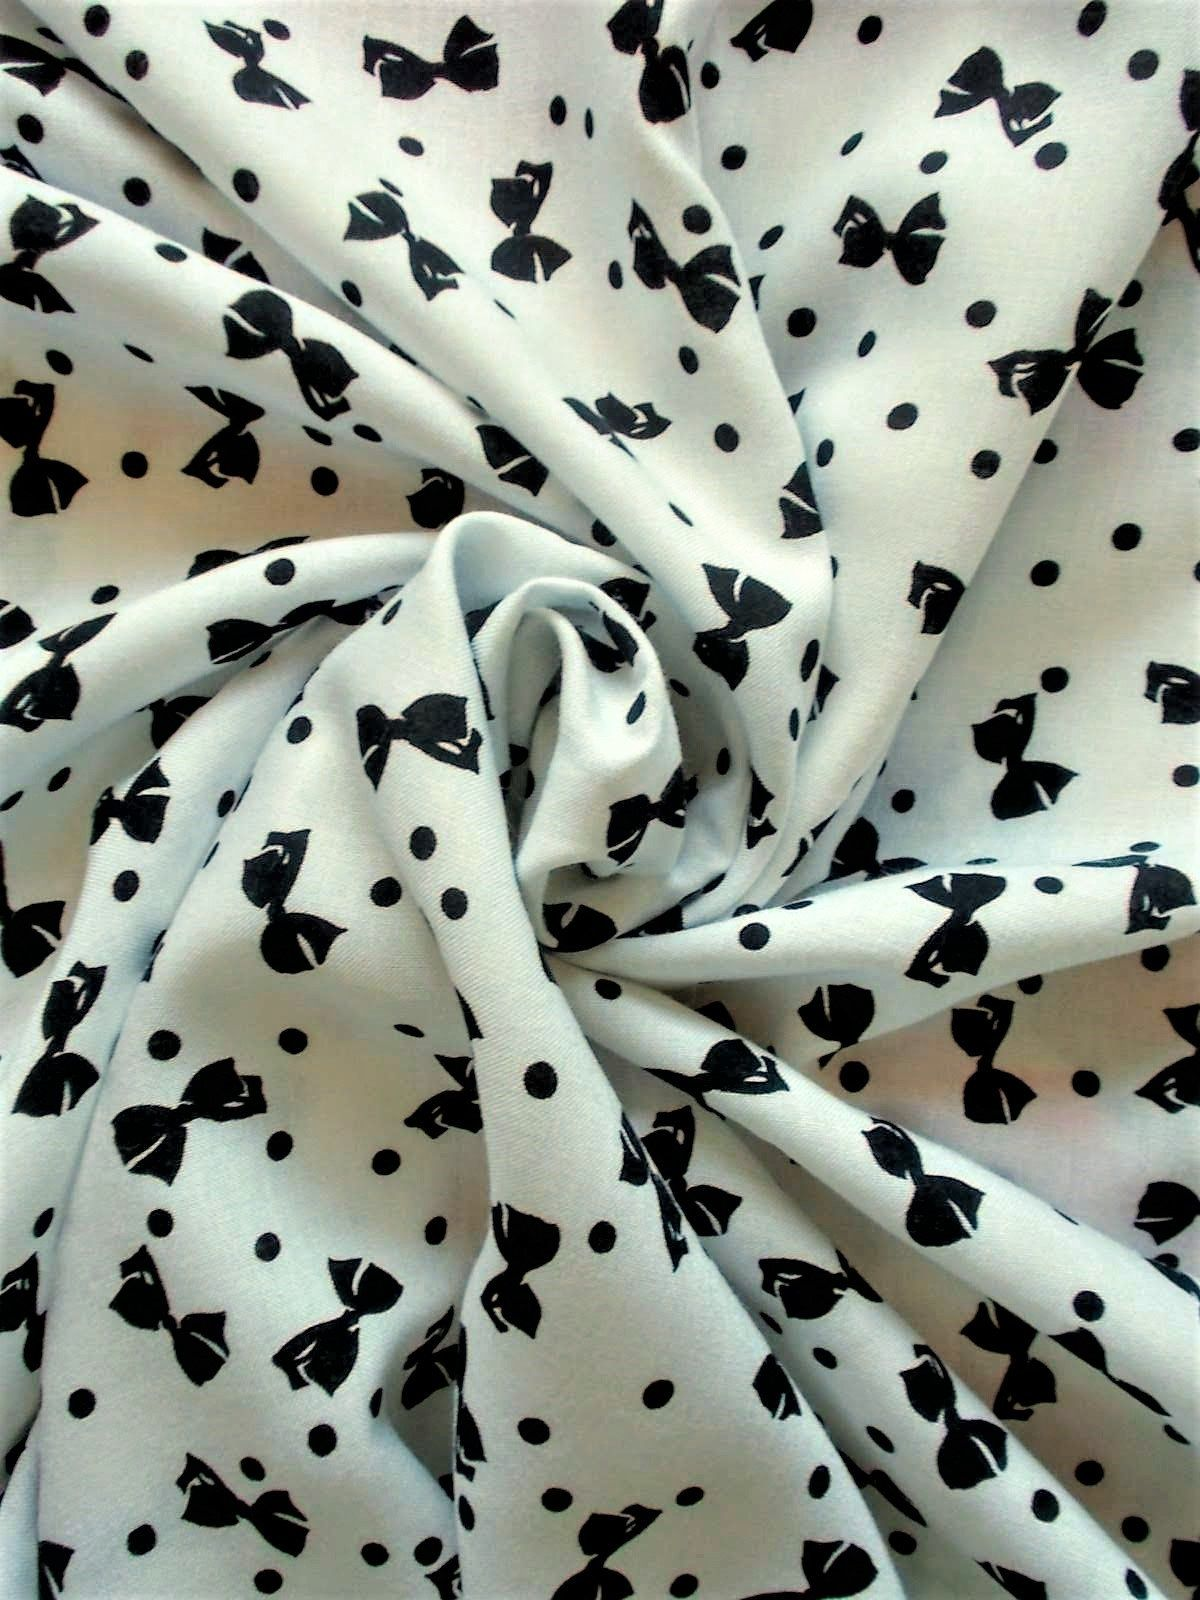 Vintage 1950s Cotton Fabric Polka Dotted Dots 1960s 4Y 37W